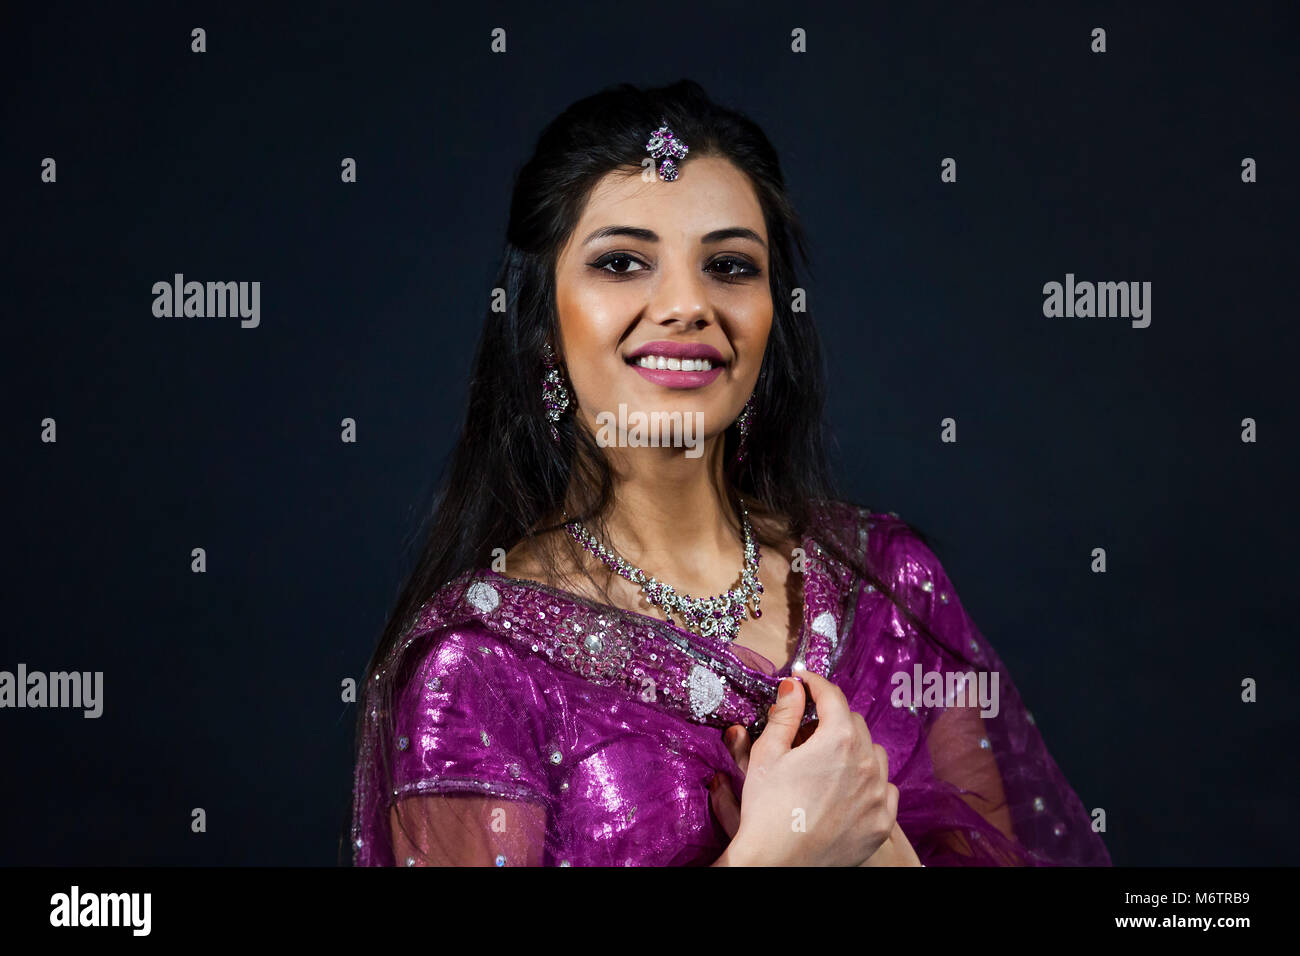 Saree Girl Stock Photos & Saree Girl Stock Images - Alamy